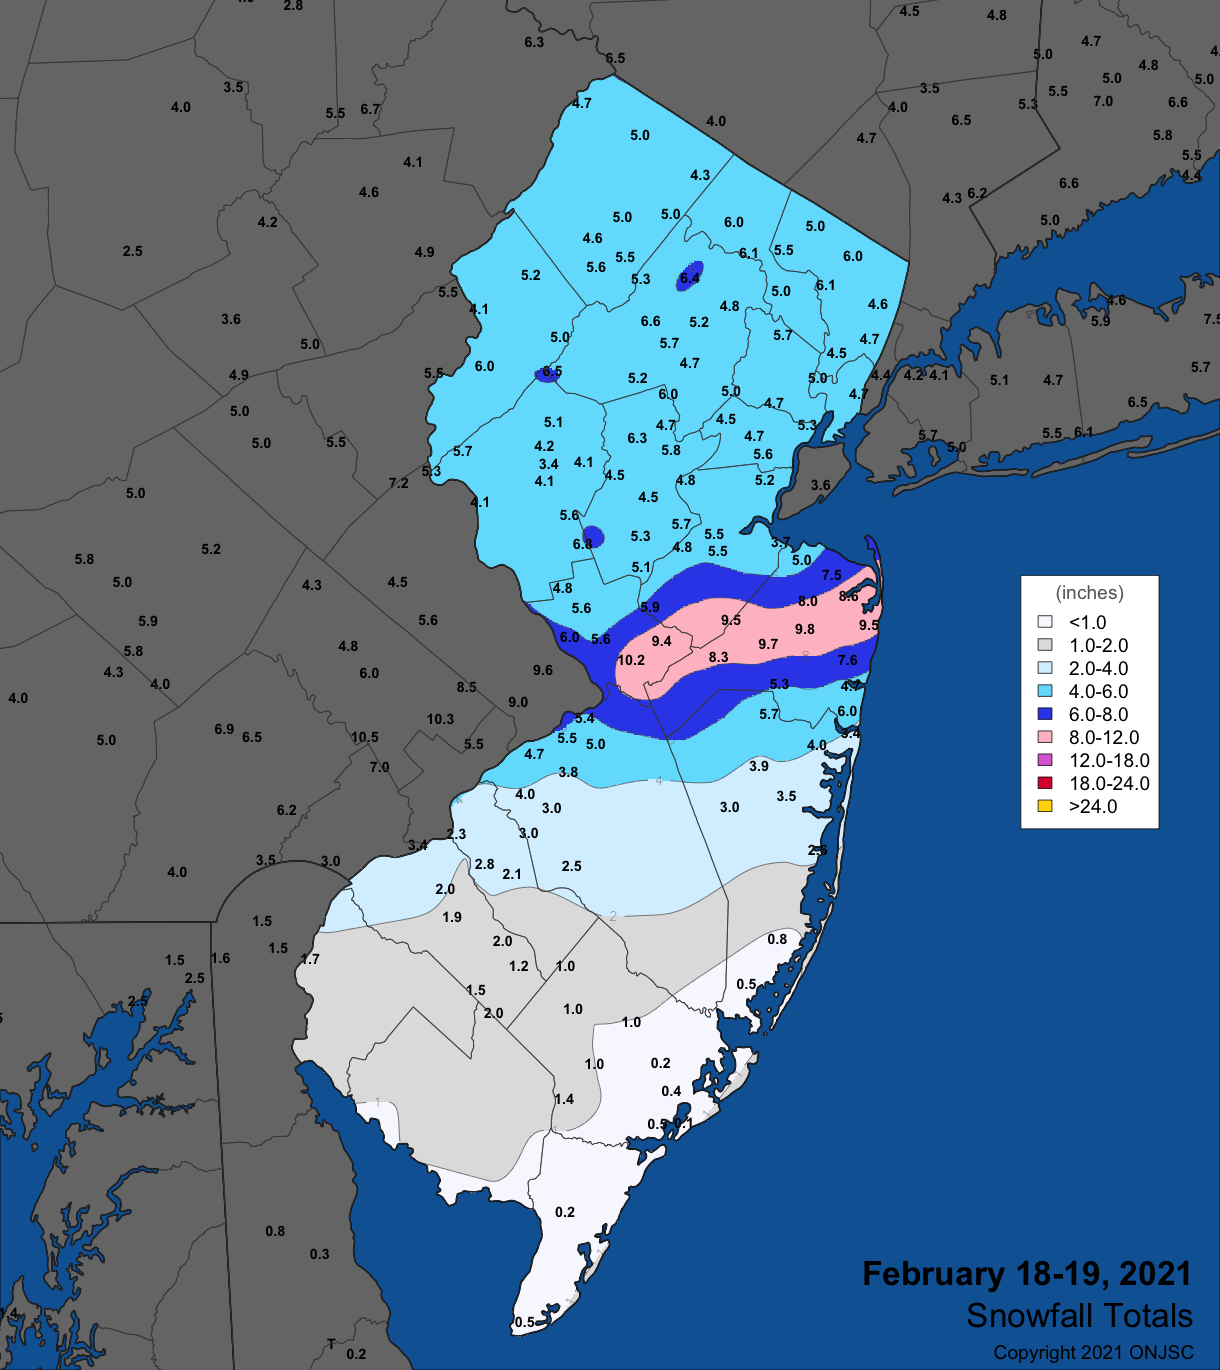 Snowfall map from the February 18th-19th winter storm